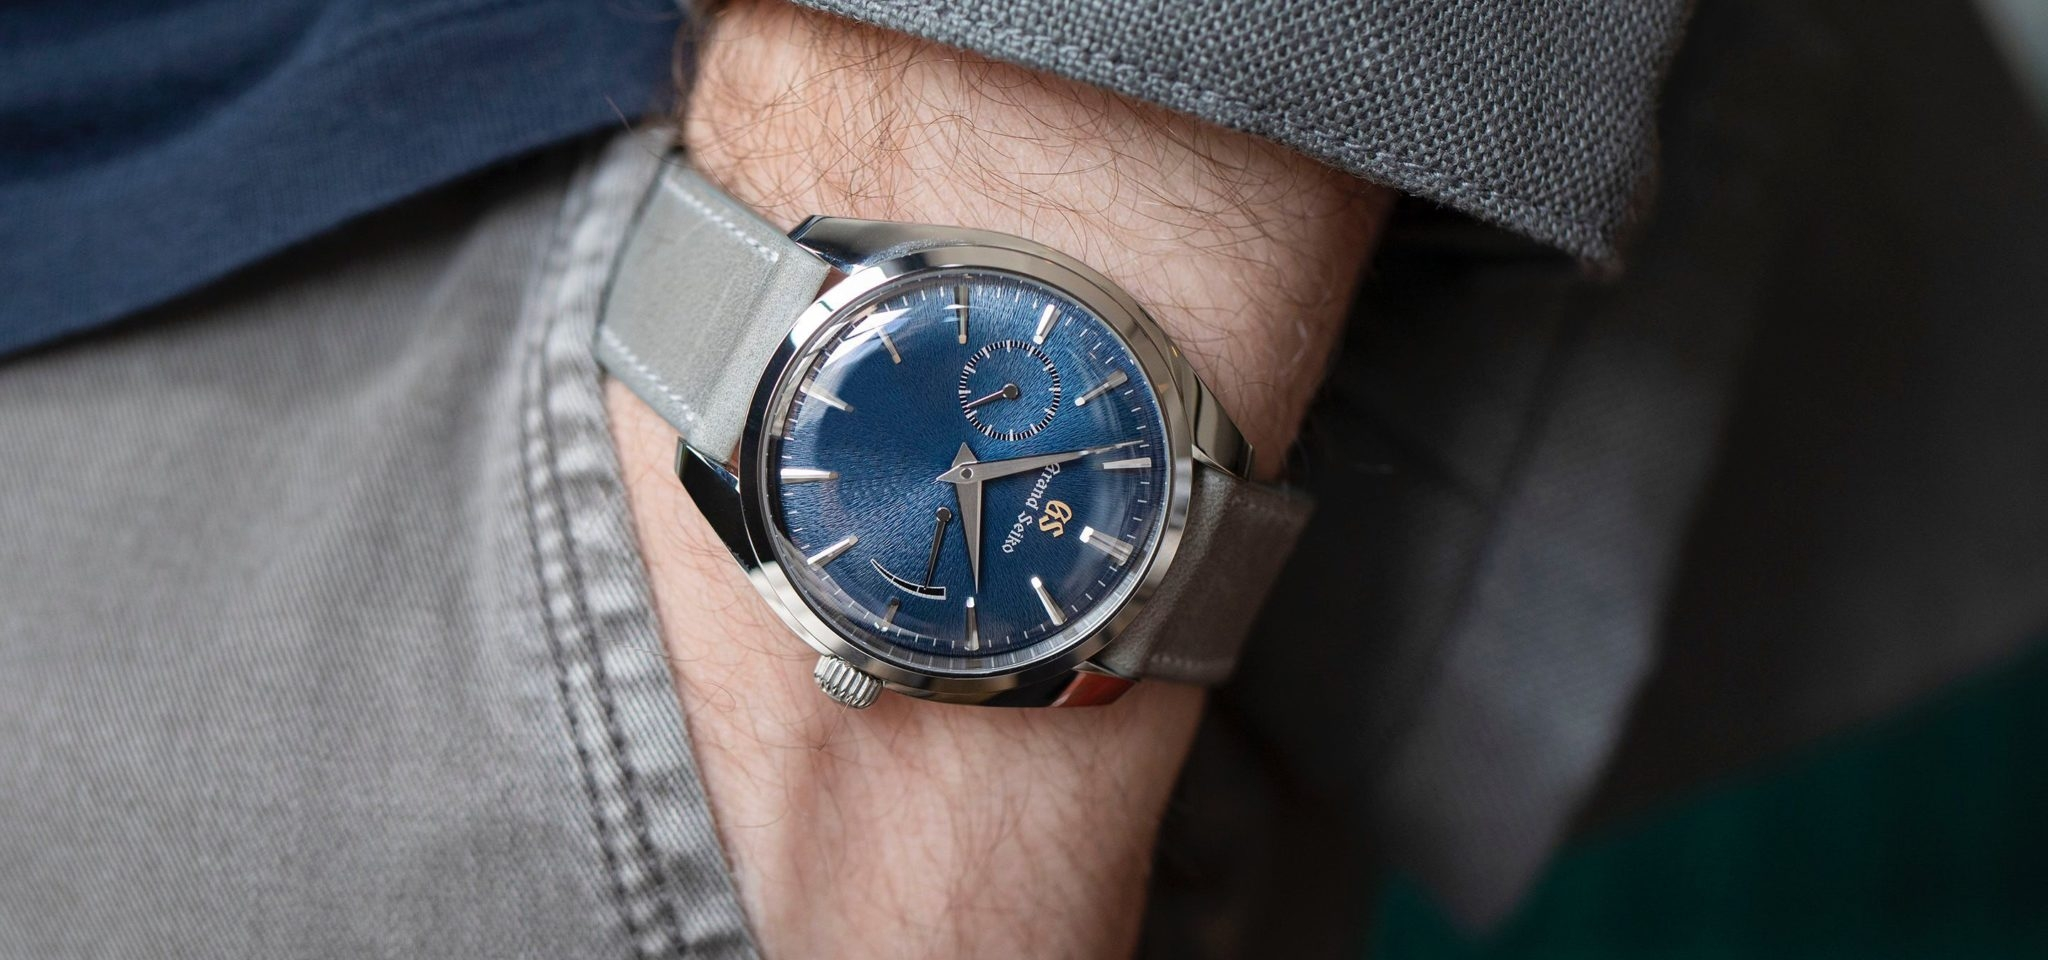 Five brands by which you can recognize a watch expert.